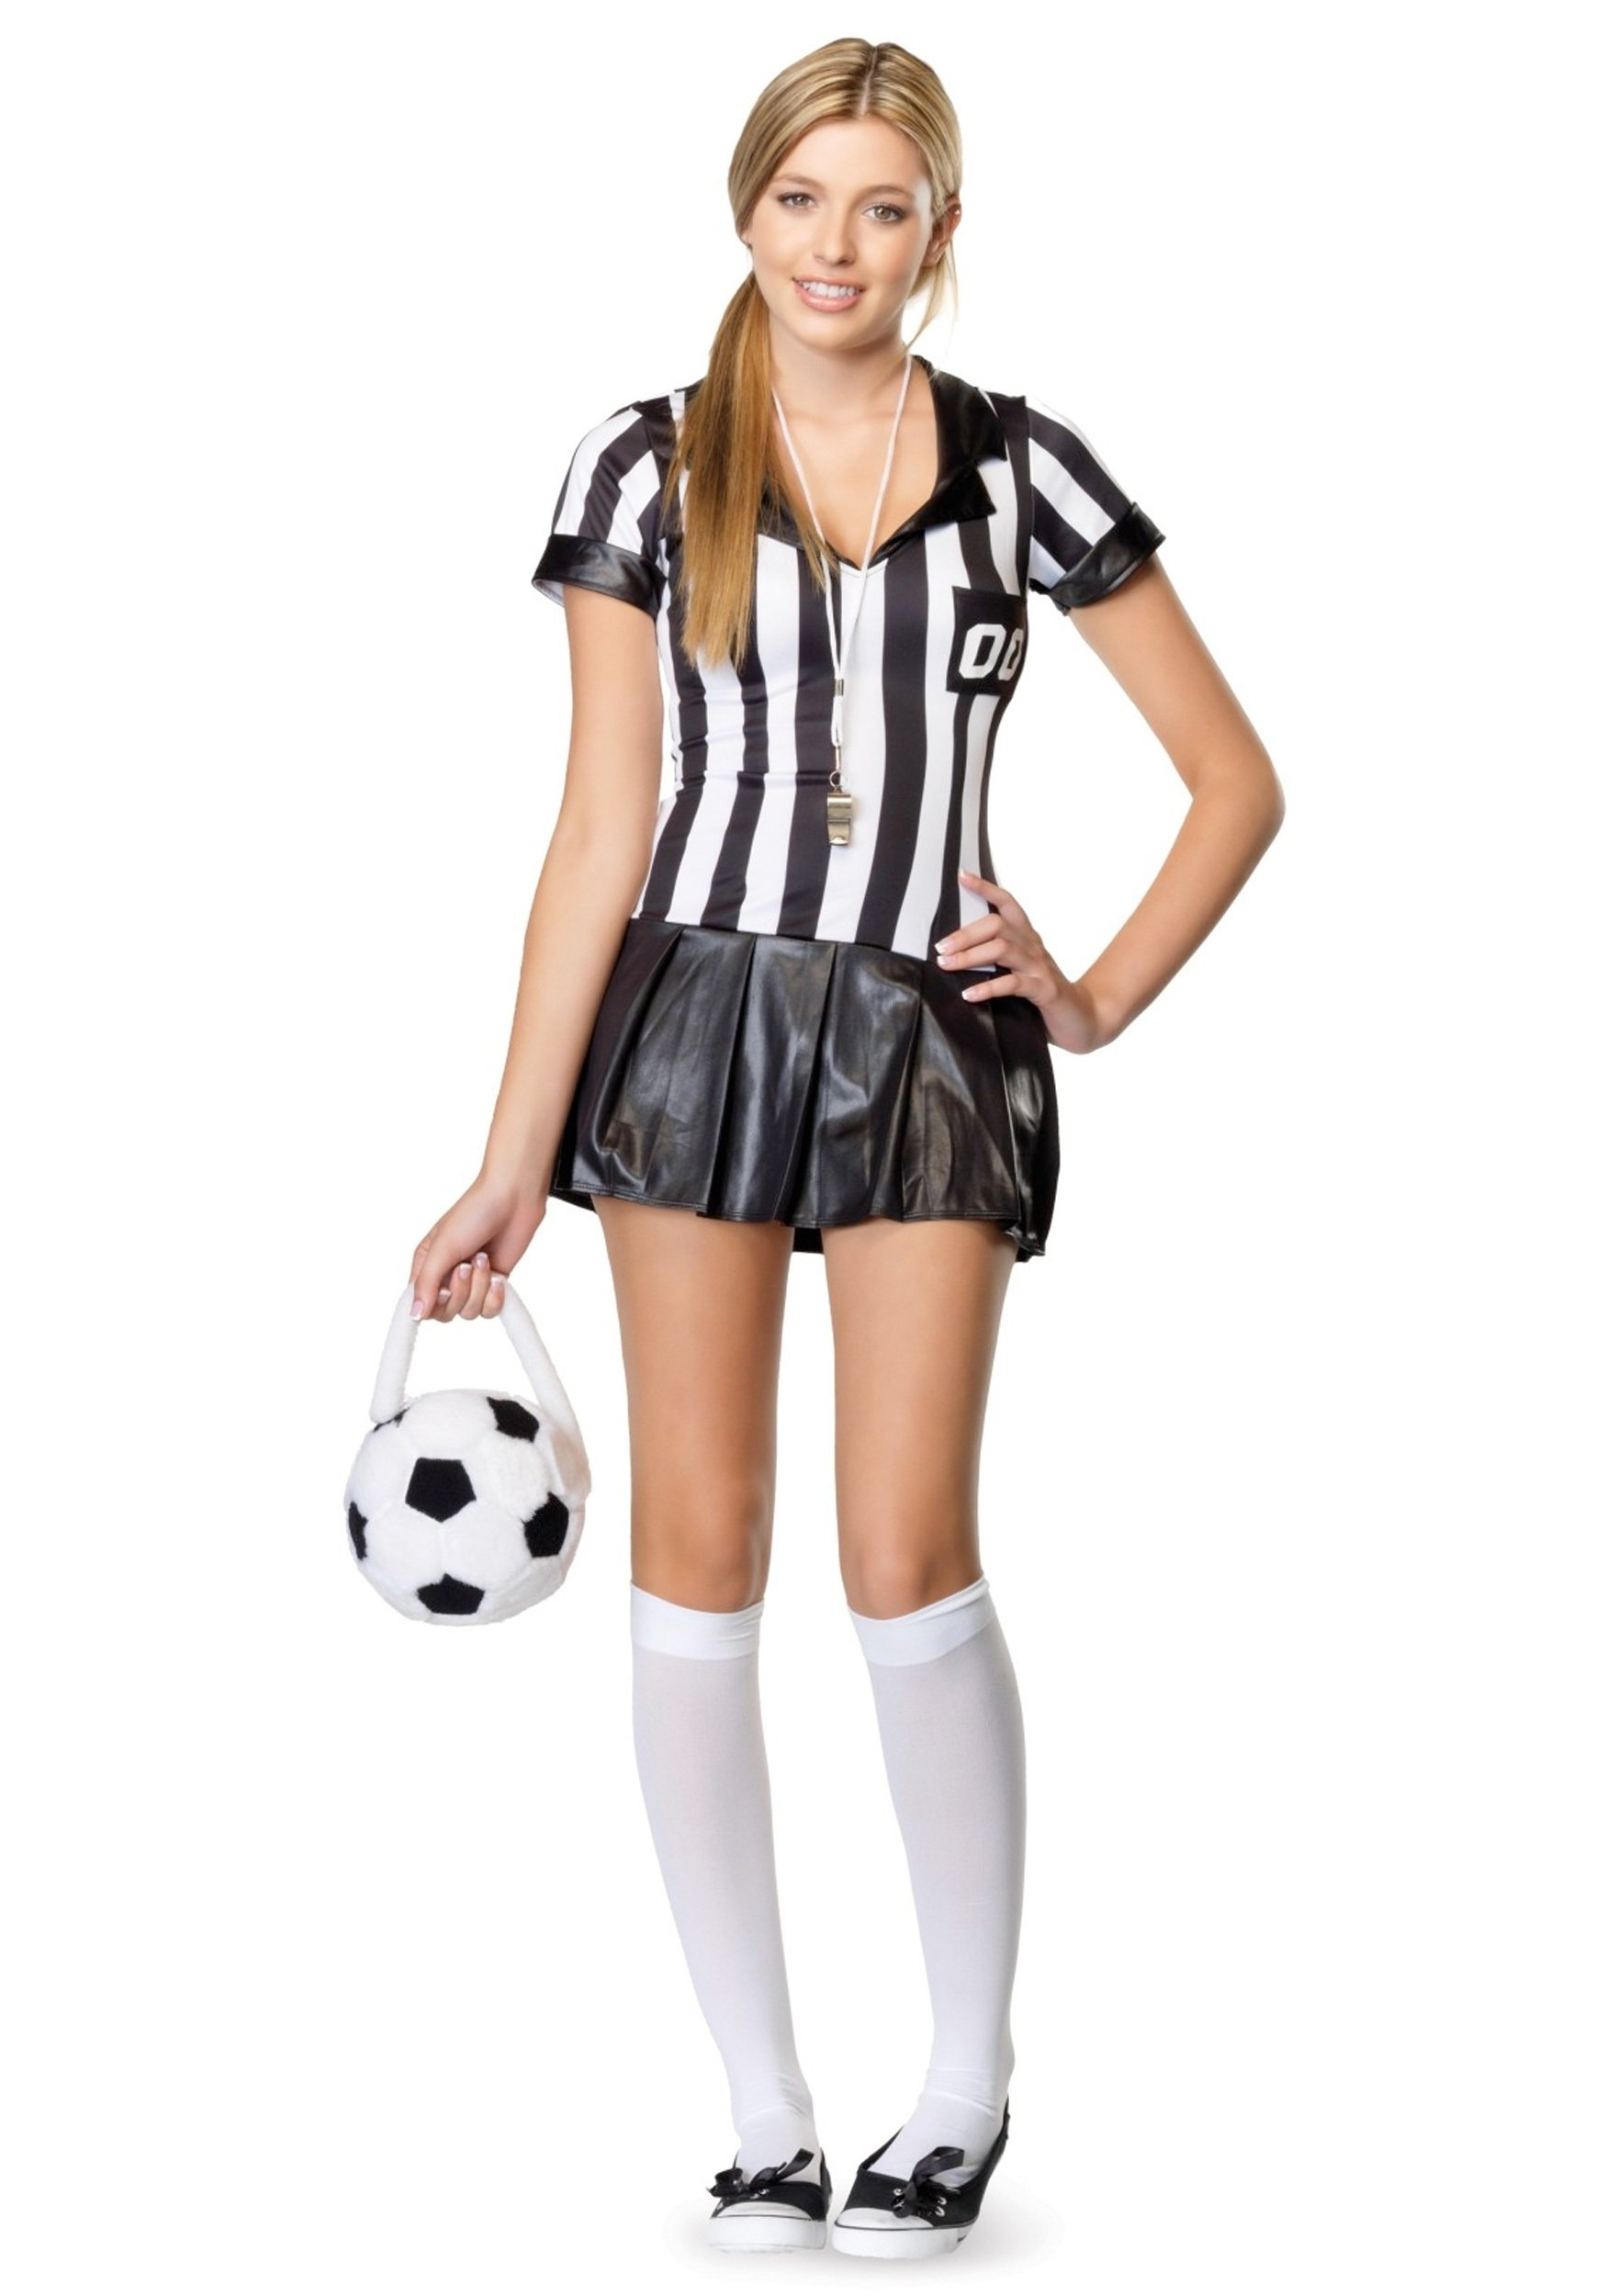 10 Perfect Cute Teen Halloween Costume Ideas cuteteencostumes home costume ideas sports costumes referee 2021